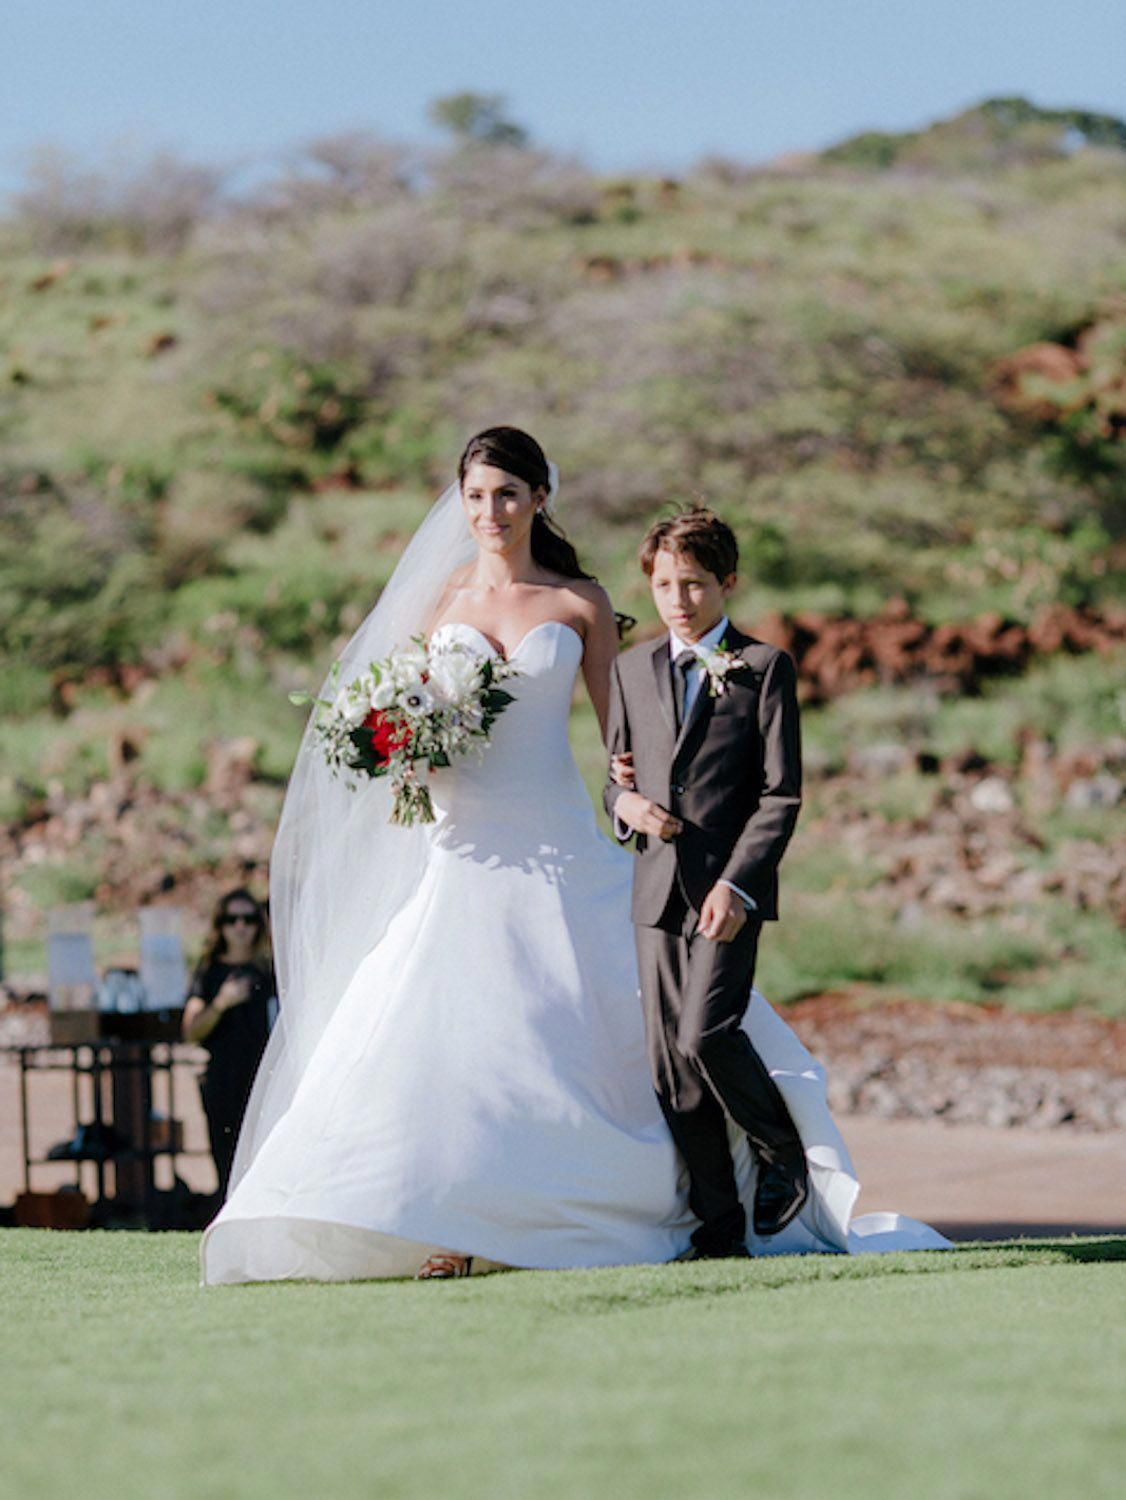 Top 10 Luxury Wedding Venues to Hold a 5 Star Wedding ...